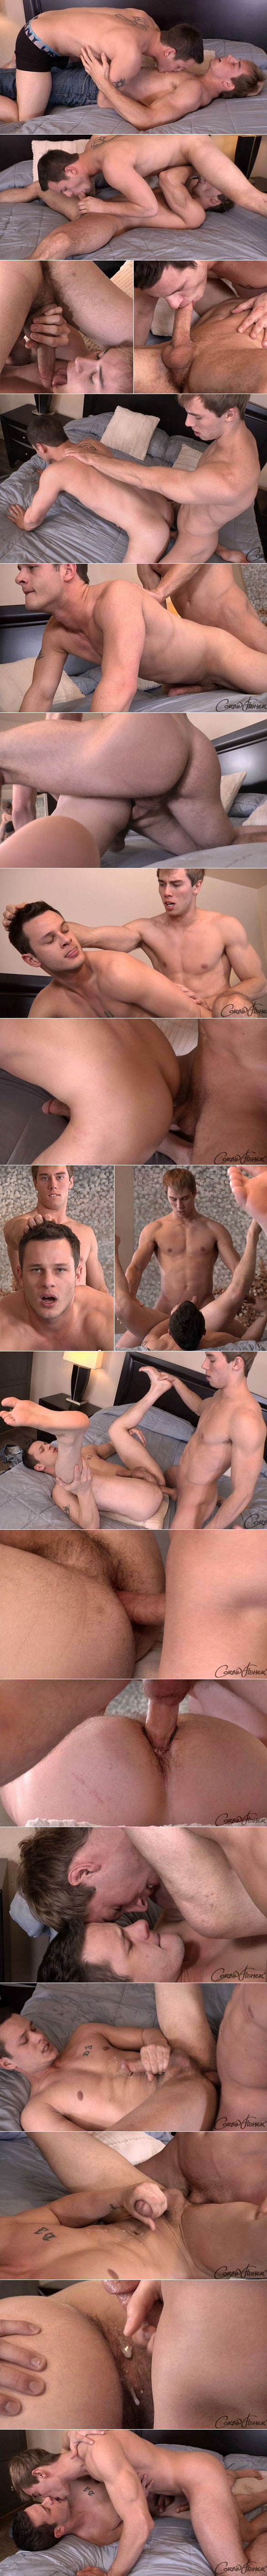 Corbin Fisher: Jacob bangs Scott raw